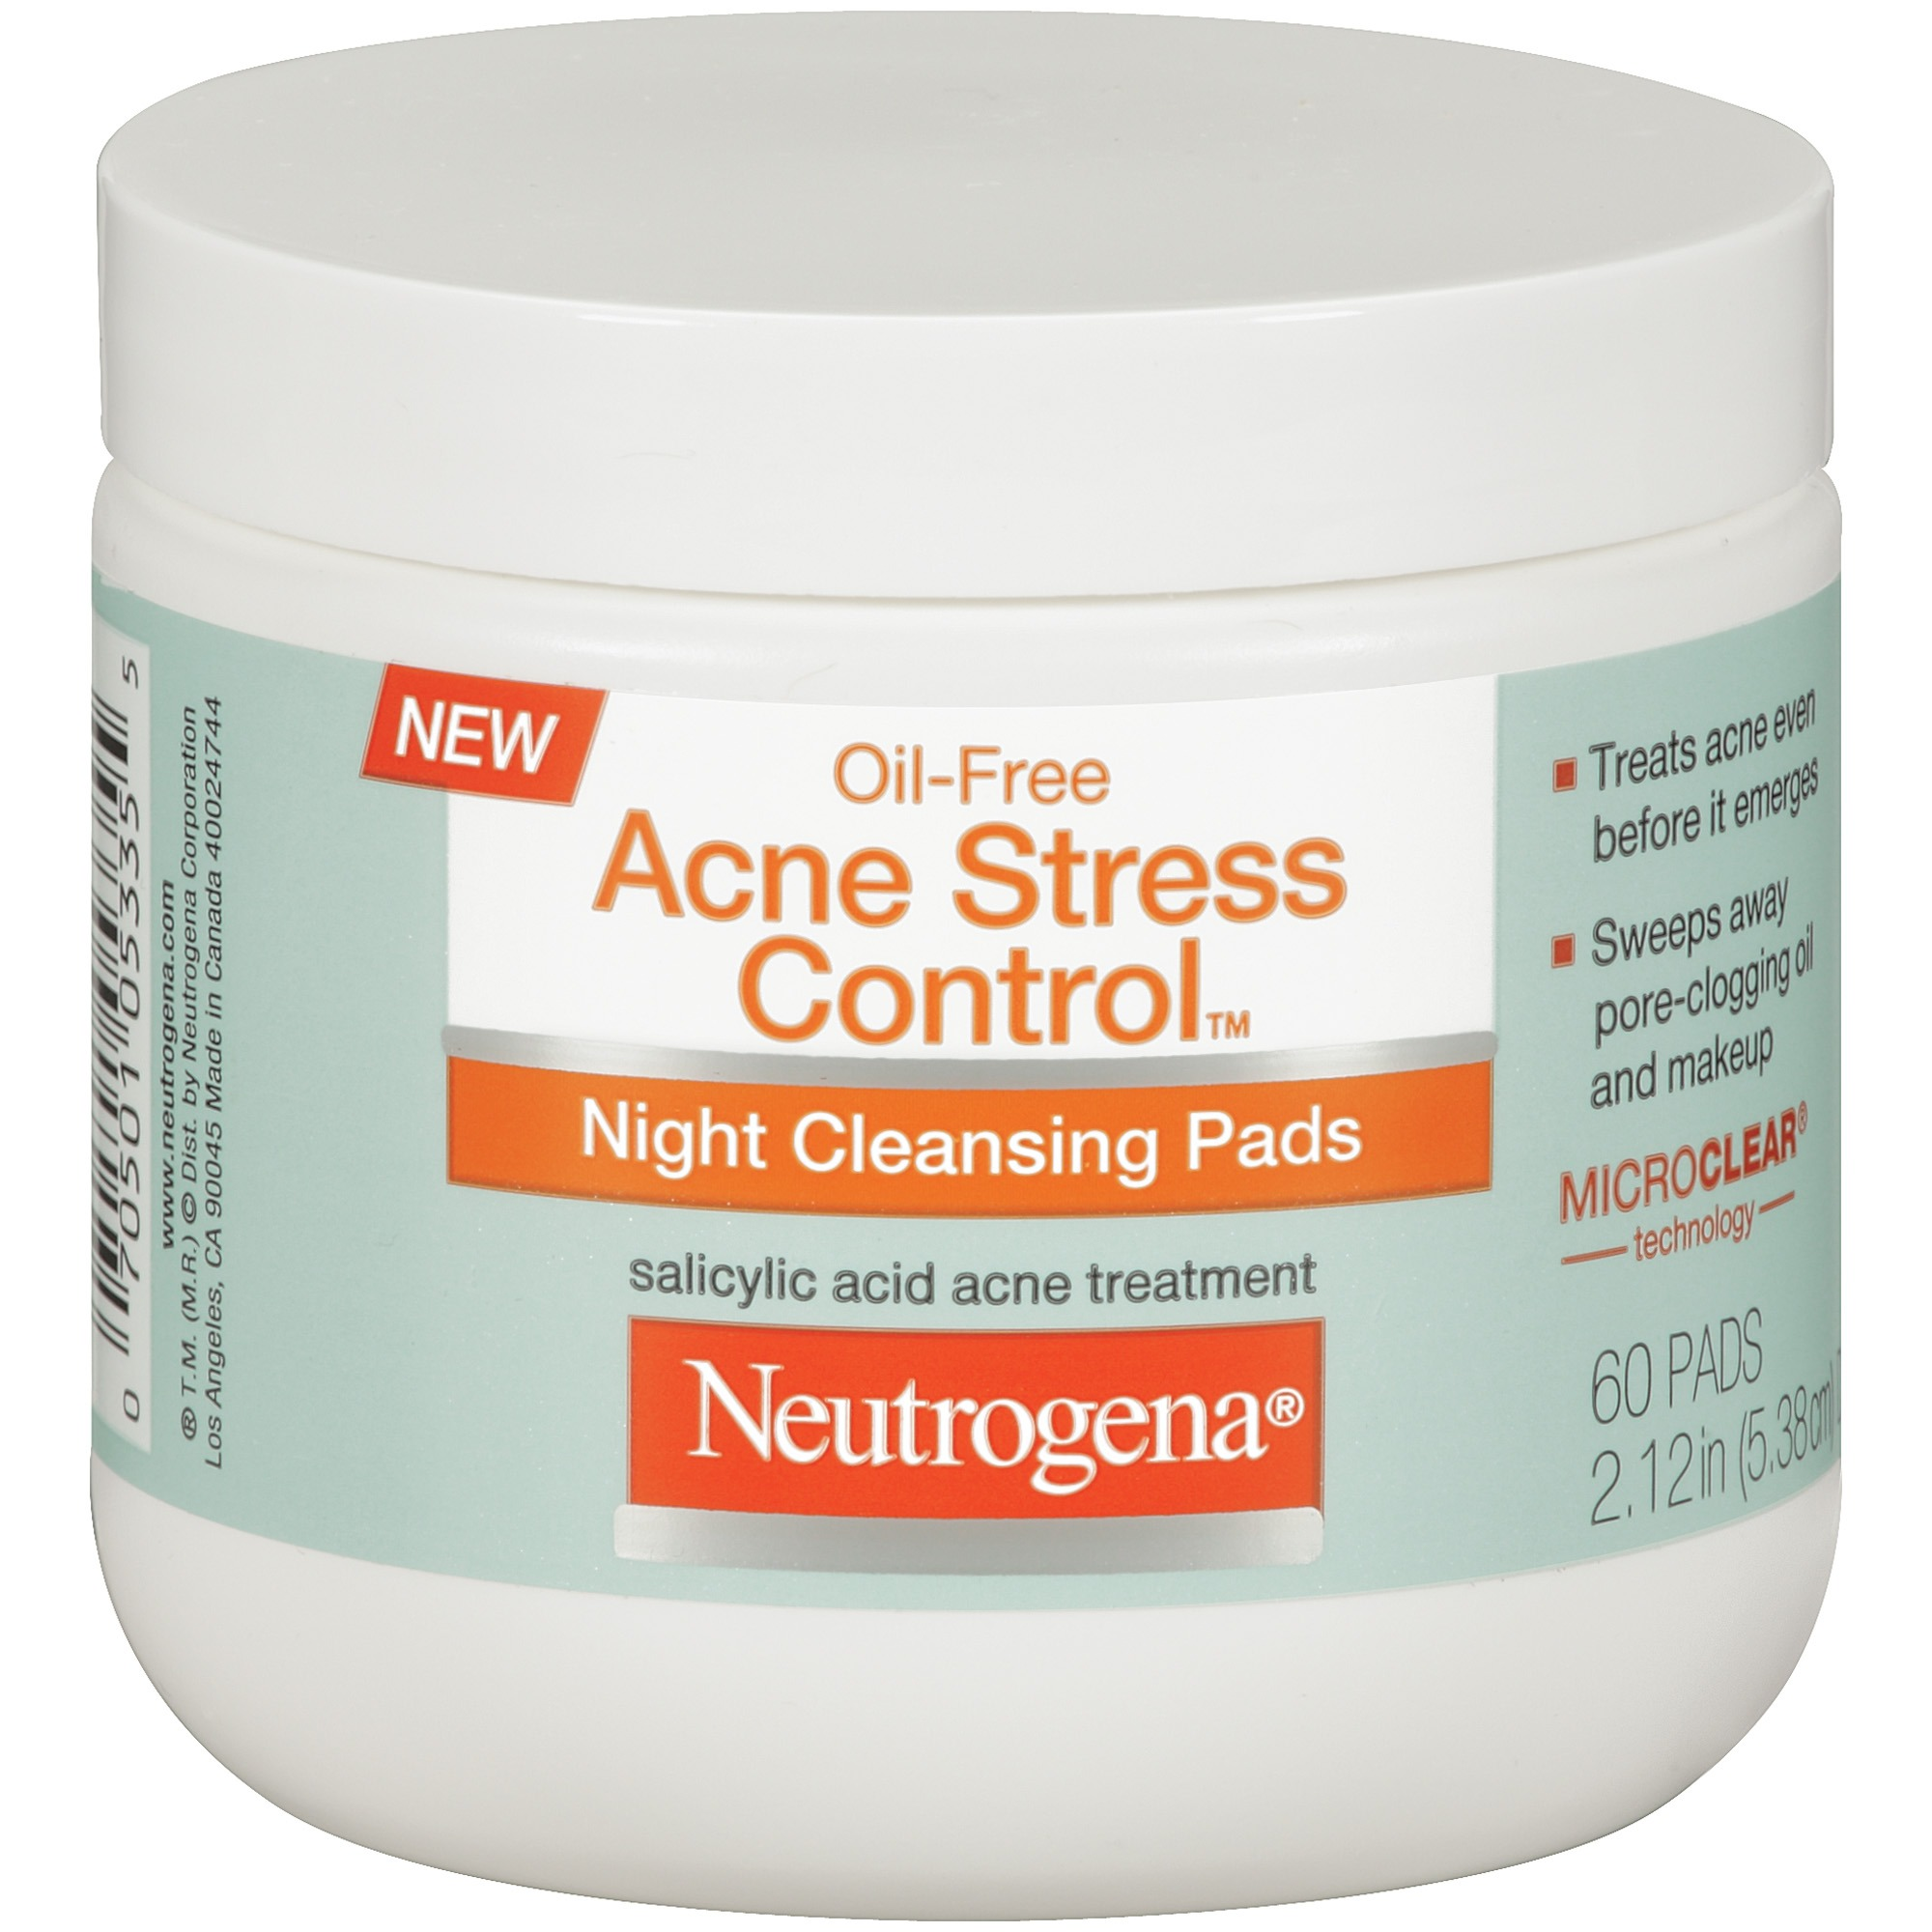 Neutrogena Oil-Free Acne Stress Control Night Cleansing Pads, 60 Count